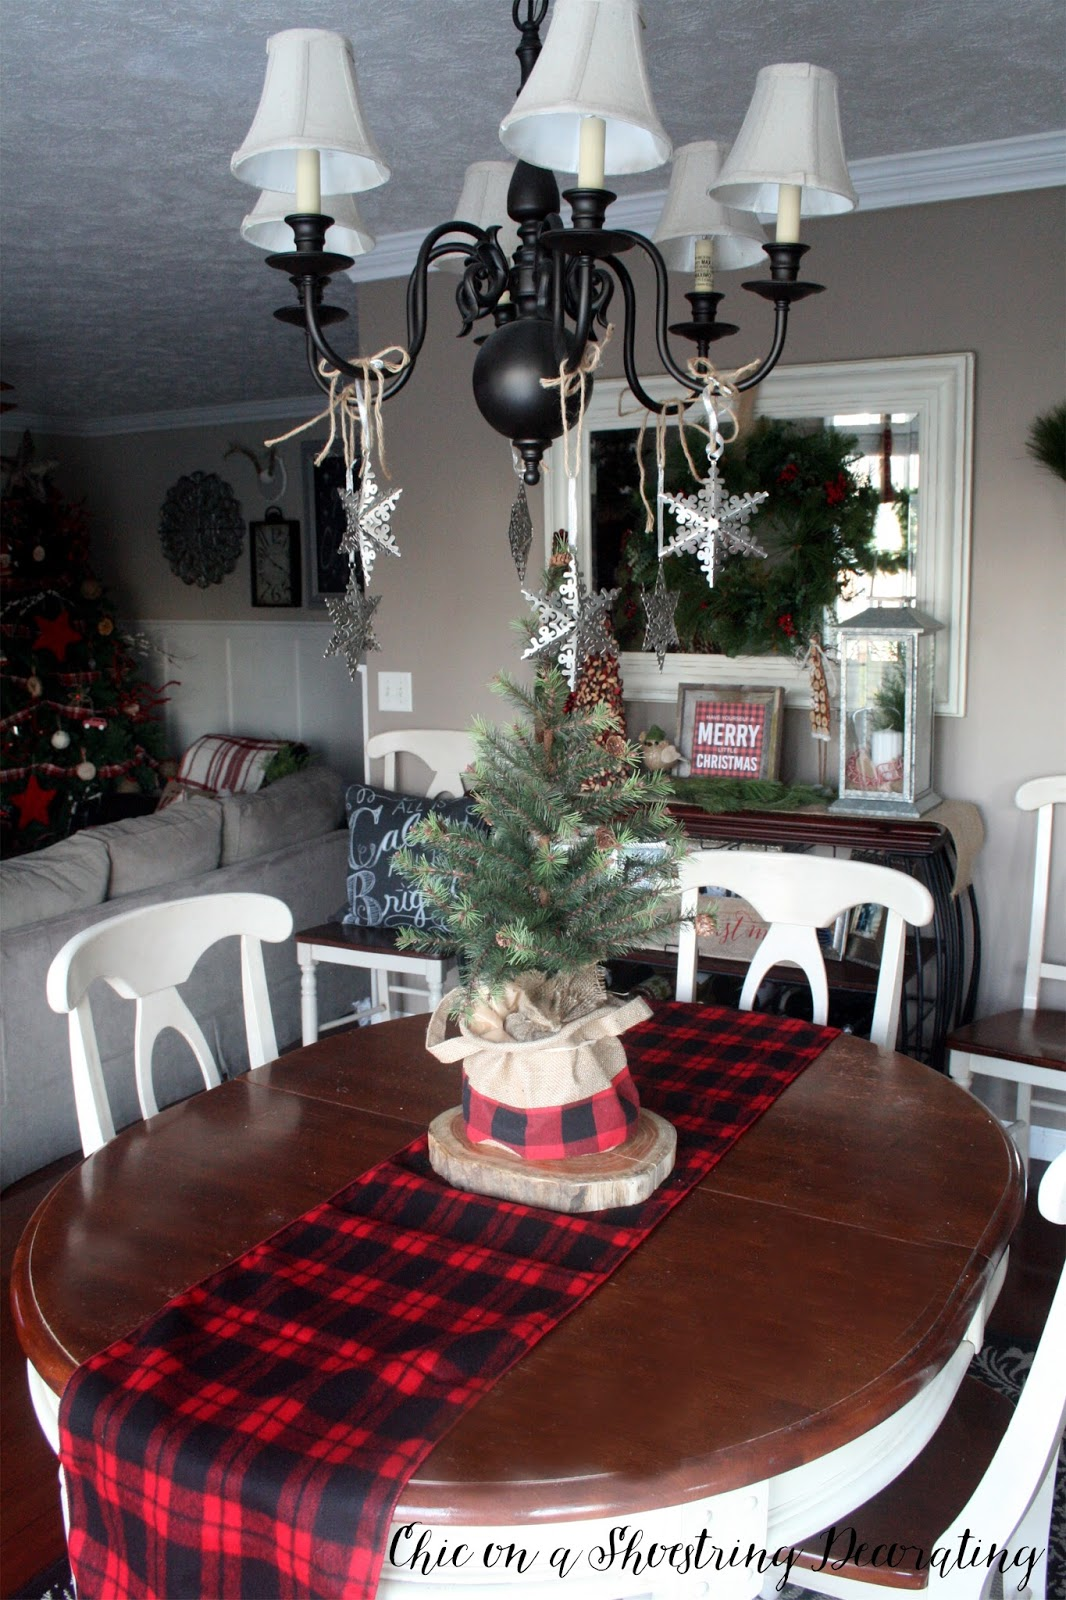 Chic on a Shoestring Decorating Farmhouse Christmas Decor Merry & Bright Home Tour Part 1